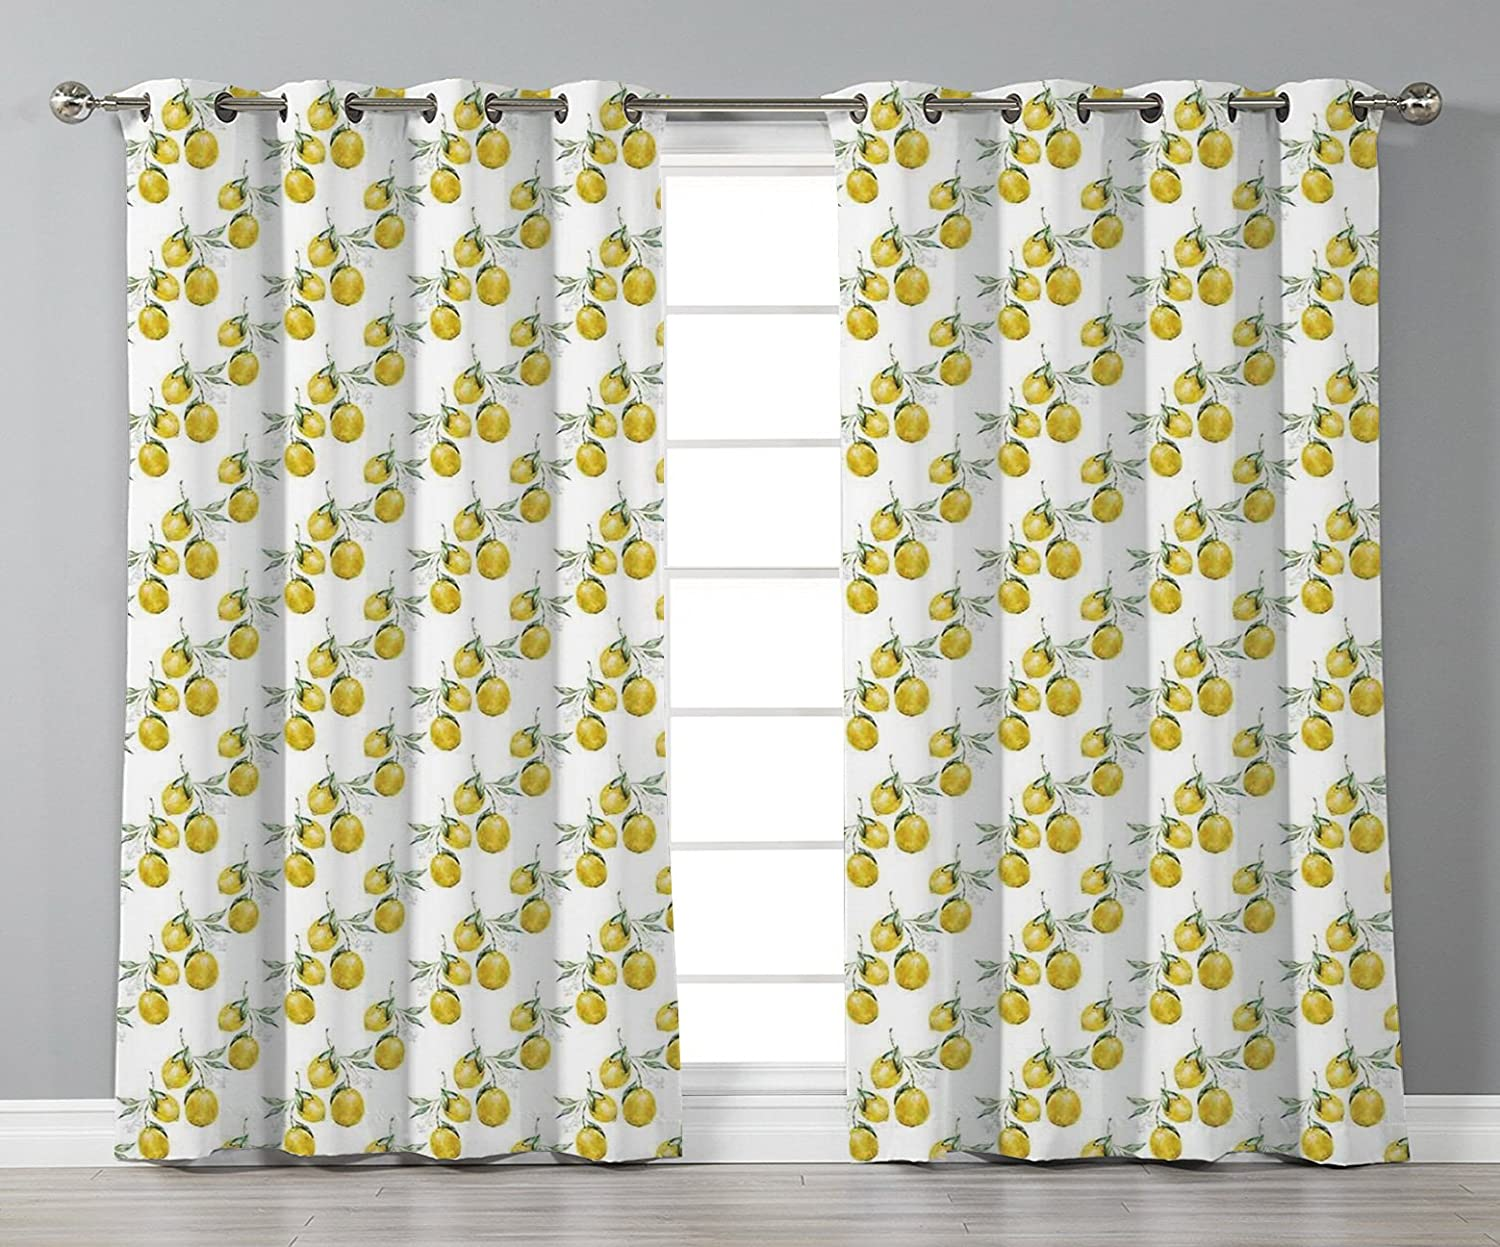 iPrint Stylish Window Curtains,Nature,Lemon Tree Branches Agriculture Kitchen Lemonade Citrus Figure Graphic Art,Olive Green Yellow,2 Panel Set Window Drapes,for Living Room Bedroom Kitchen Cafe